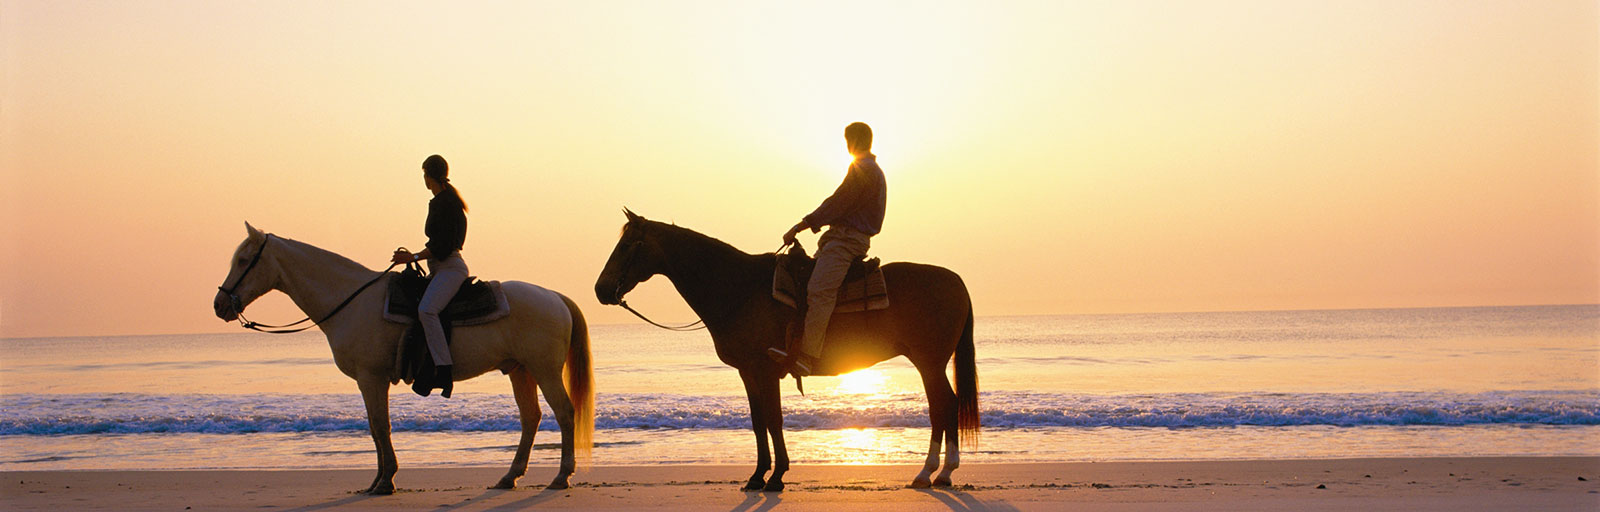 Horseback Riding & Yoga Retreat in Mexico: Sunset on the Beach